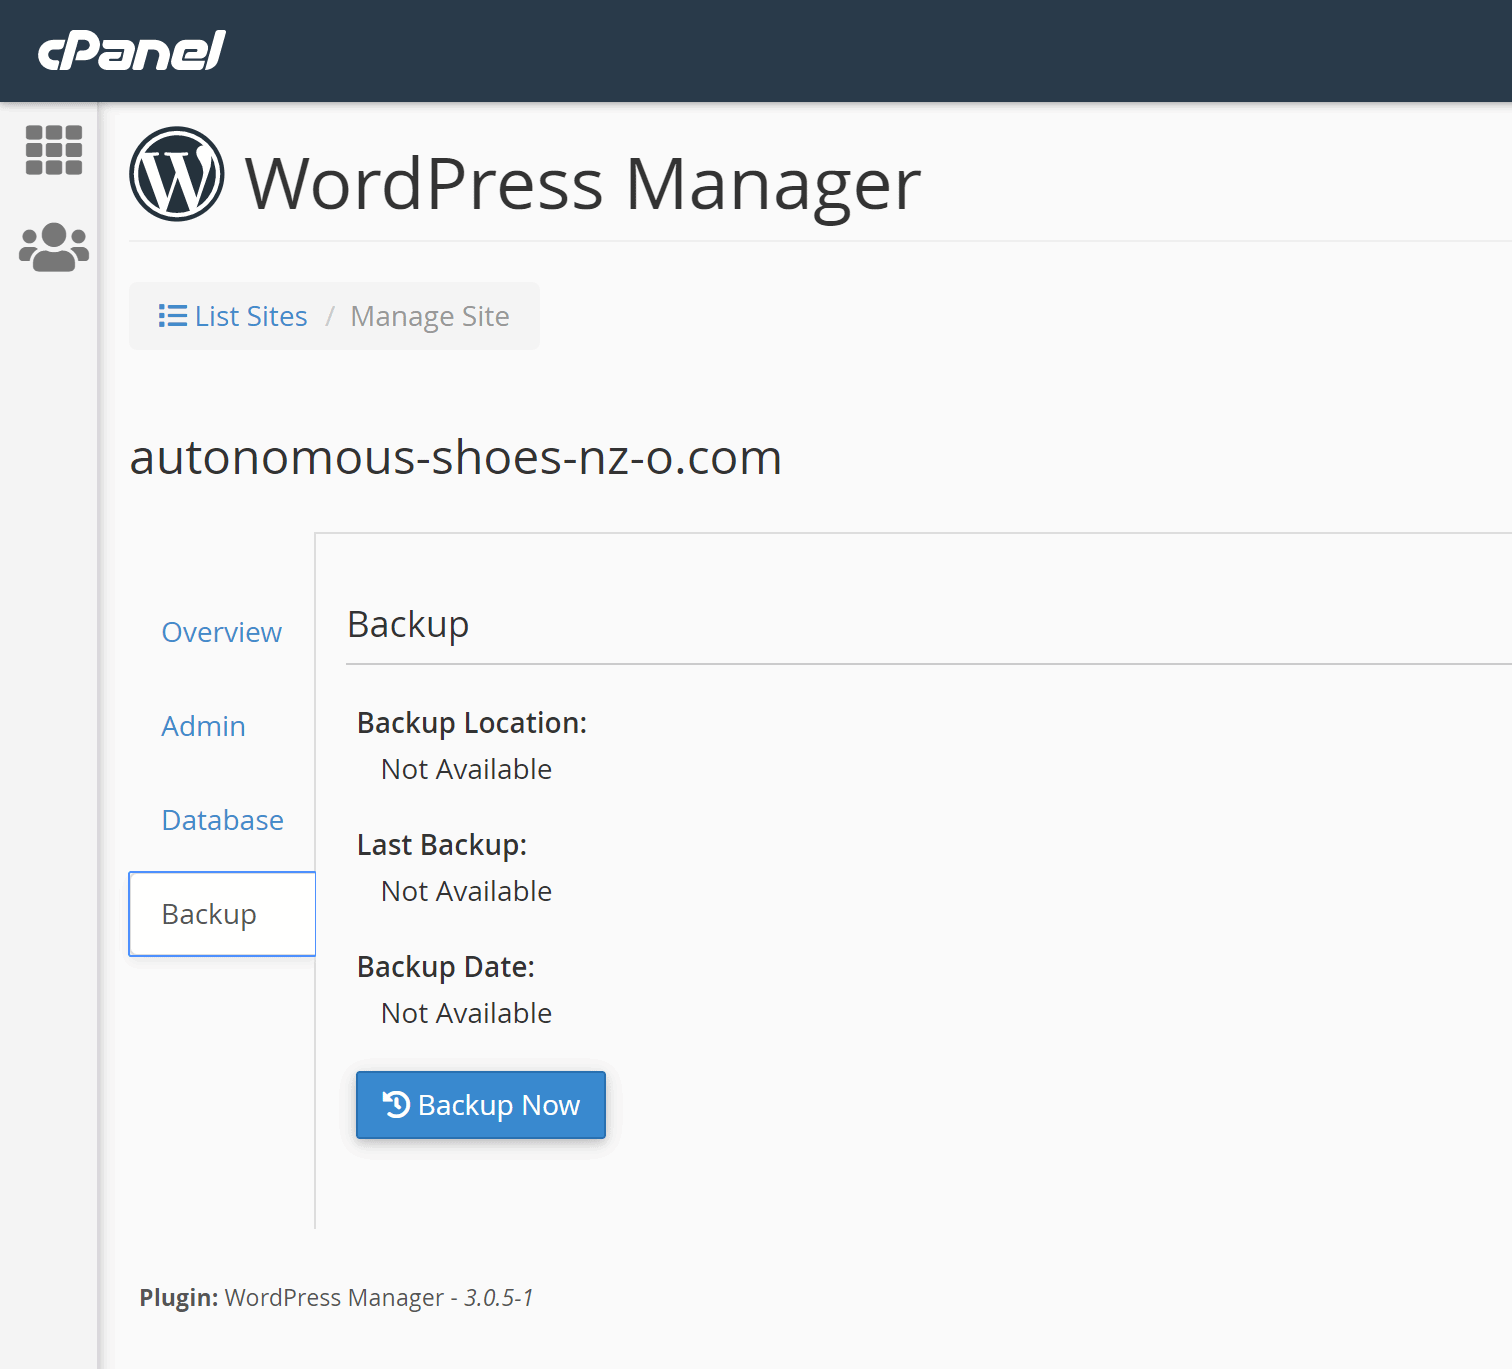 Webslice - WordPress Manager backup screen